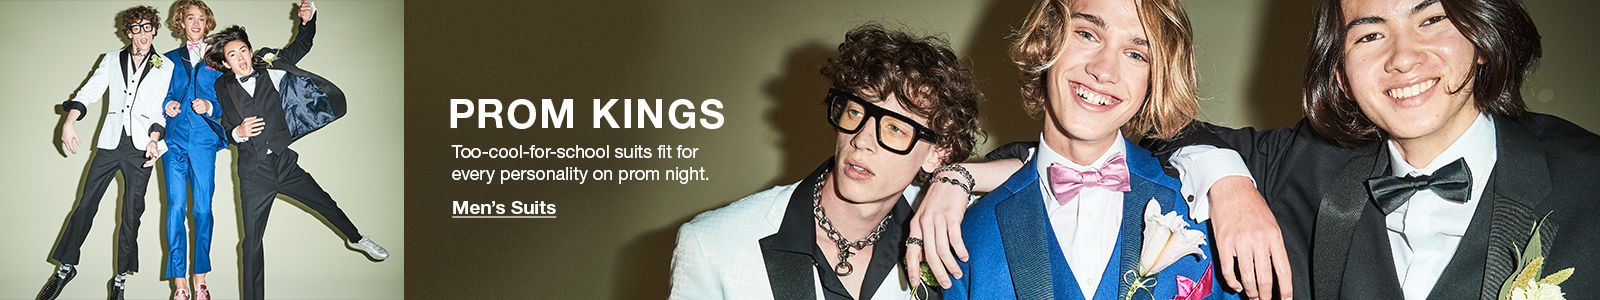 Prom Kings, Too-cool-for-school suits fit for every personality on prom night, Men's Suits